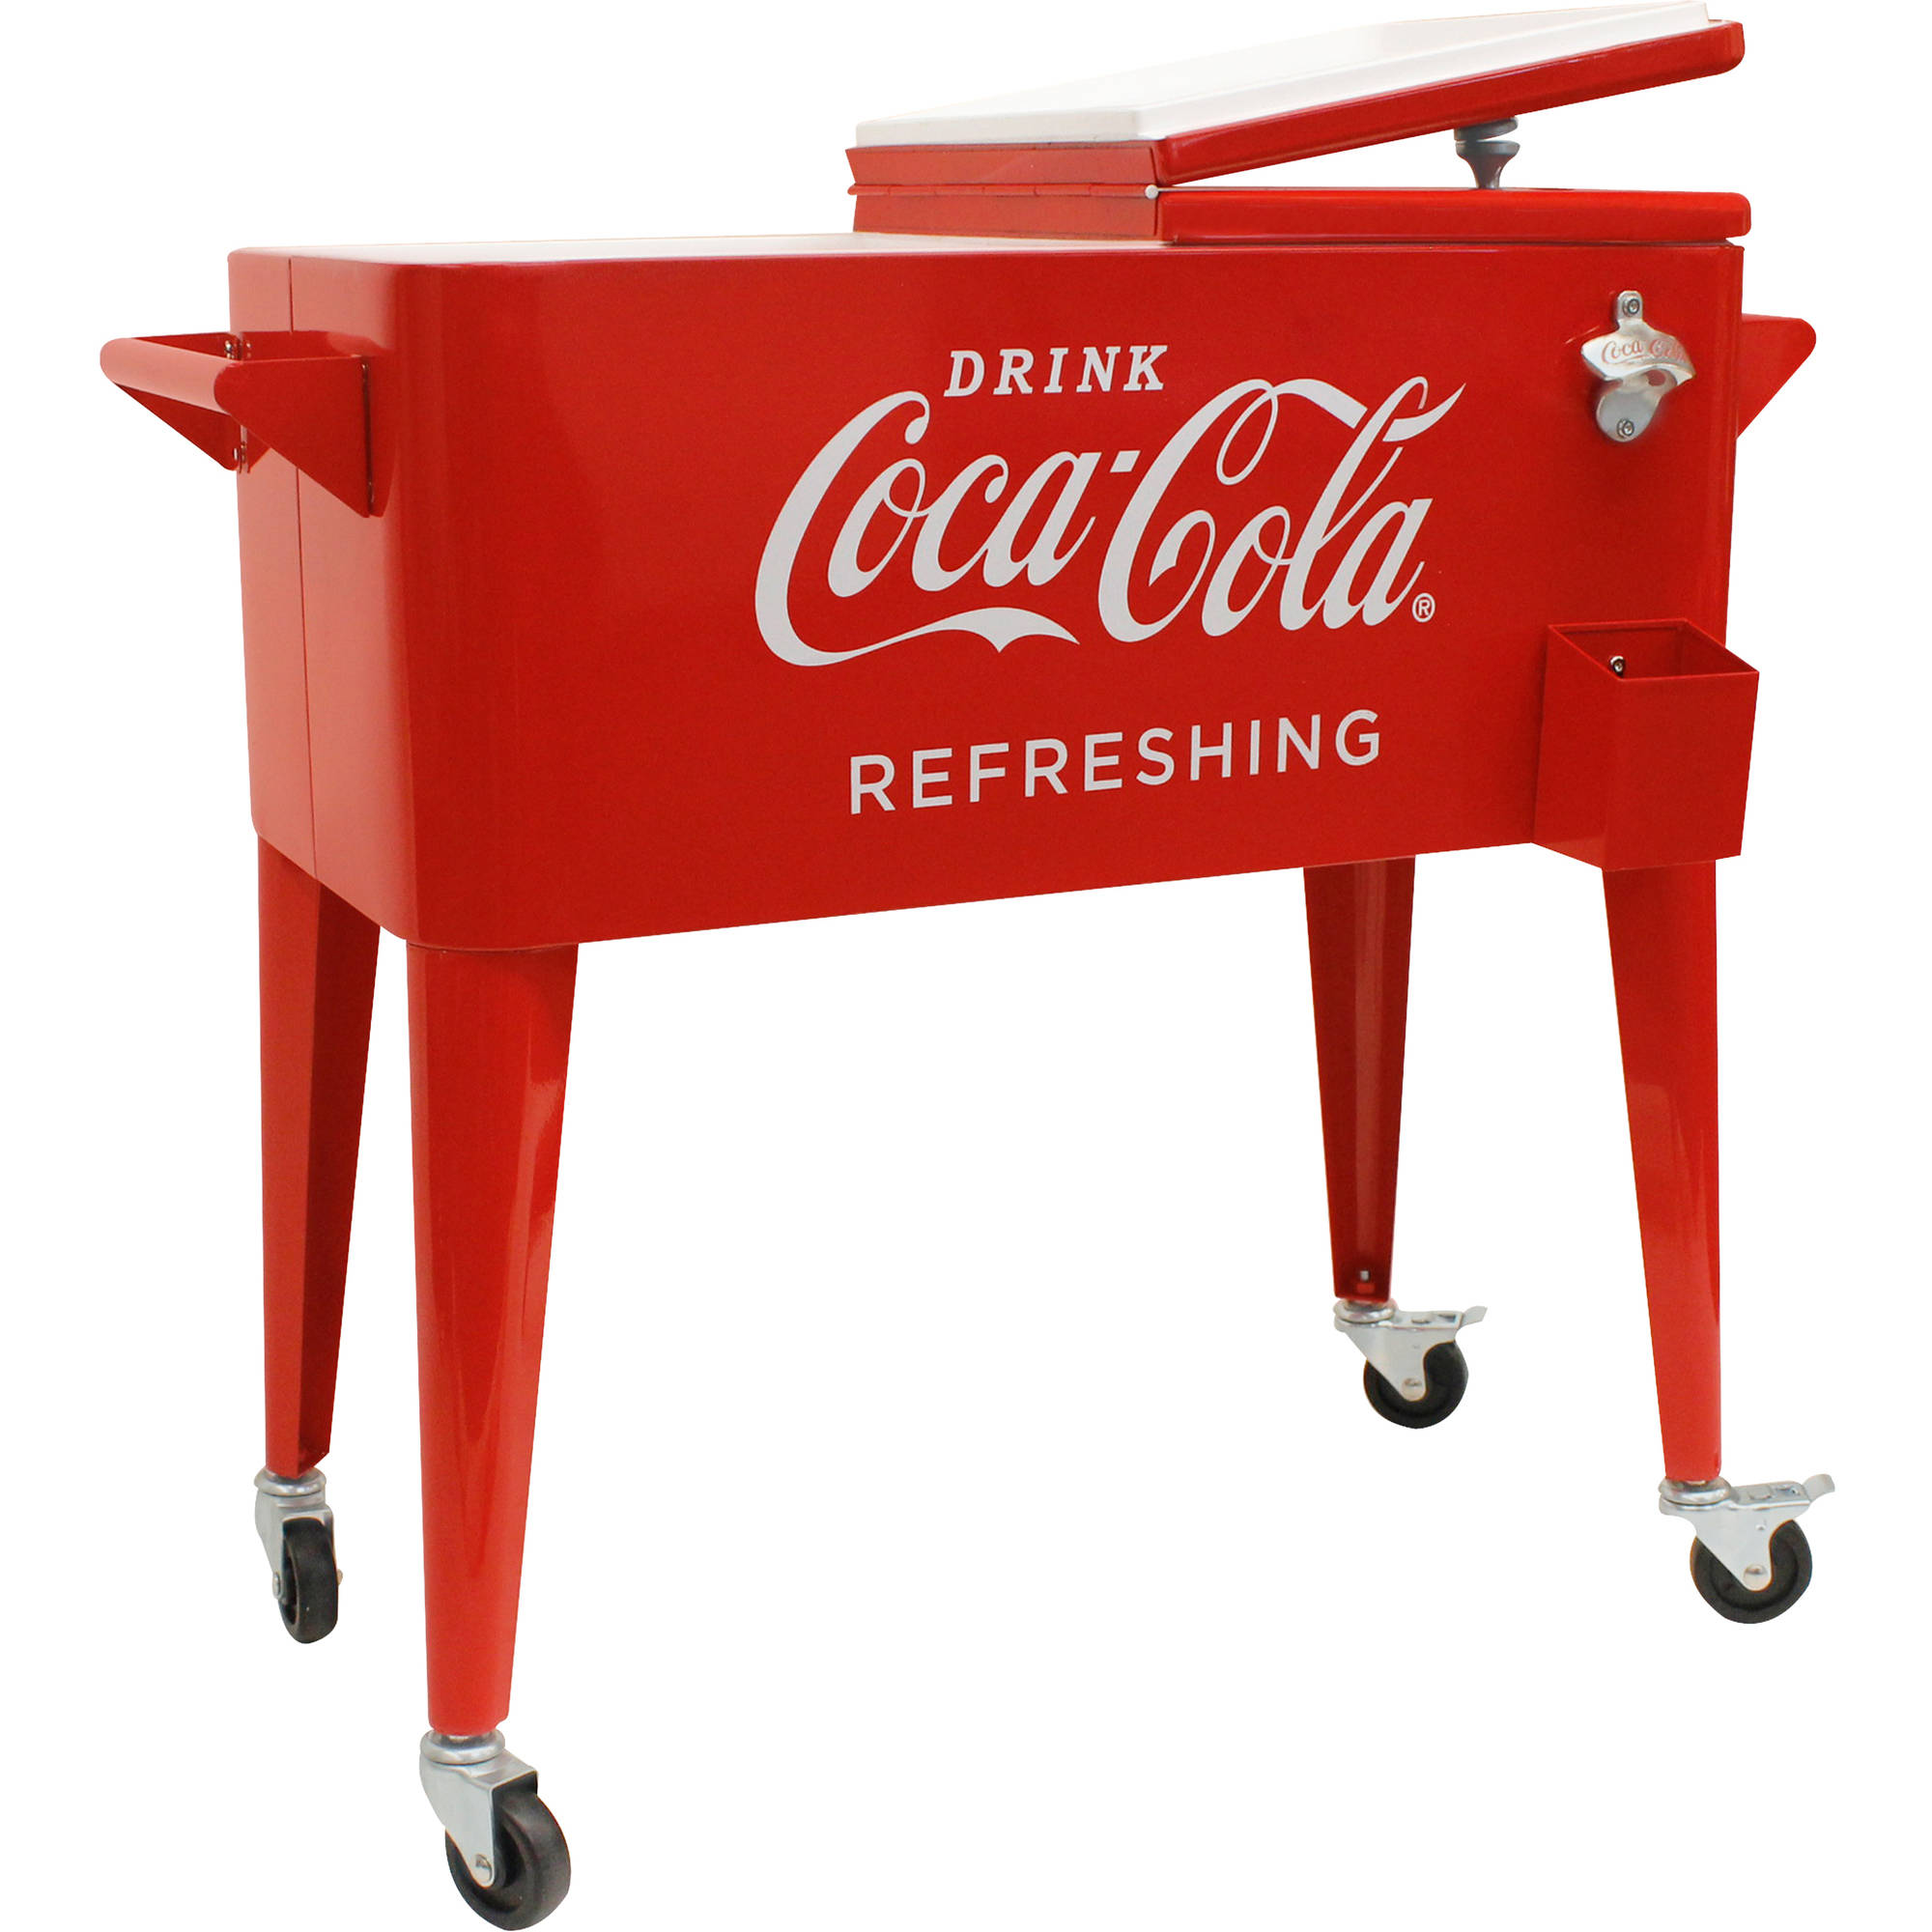 80 Quart Retro Coca Cola Cooler Refreshing